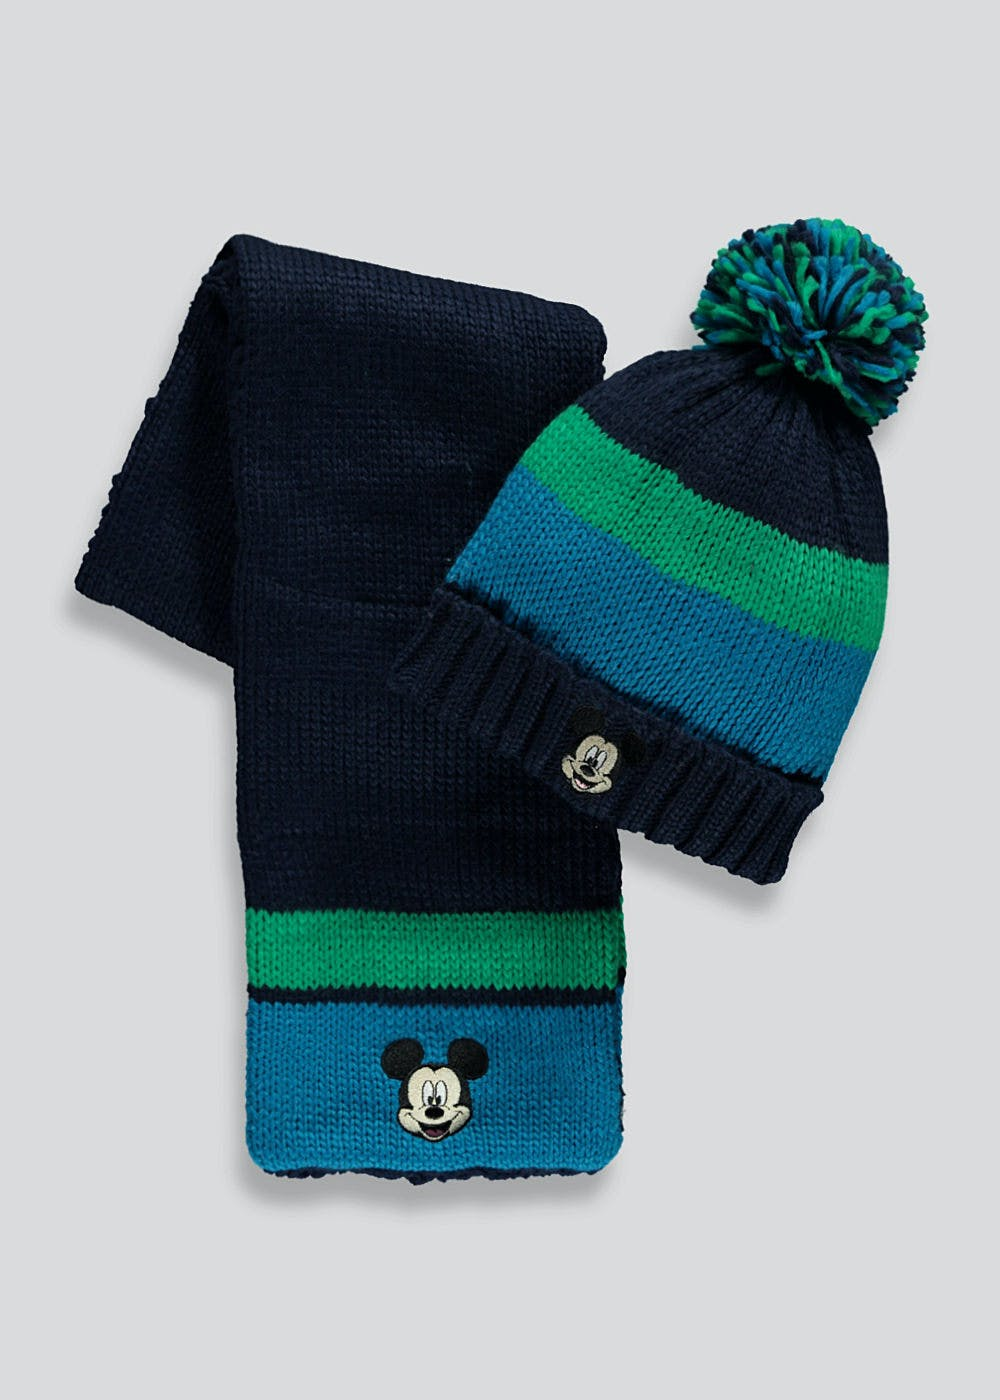 Boys/' Toddlers Beanie//Mittens 2-Piece Set   Disney Mickey Mouse  NWT